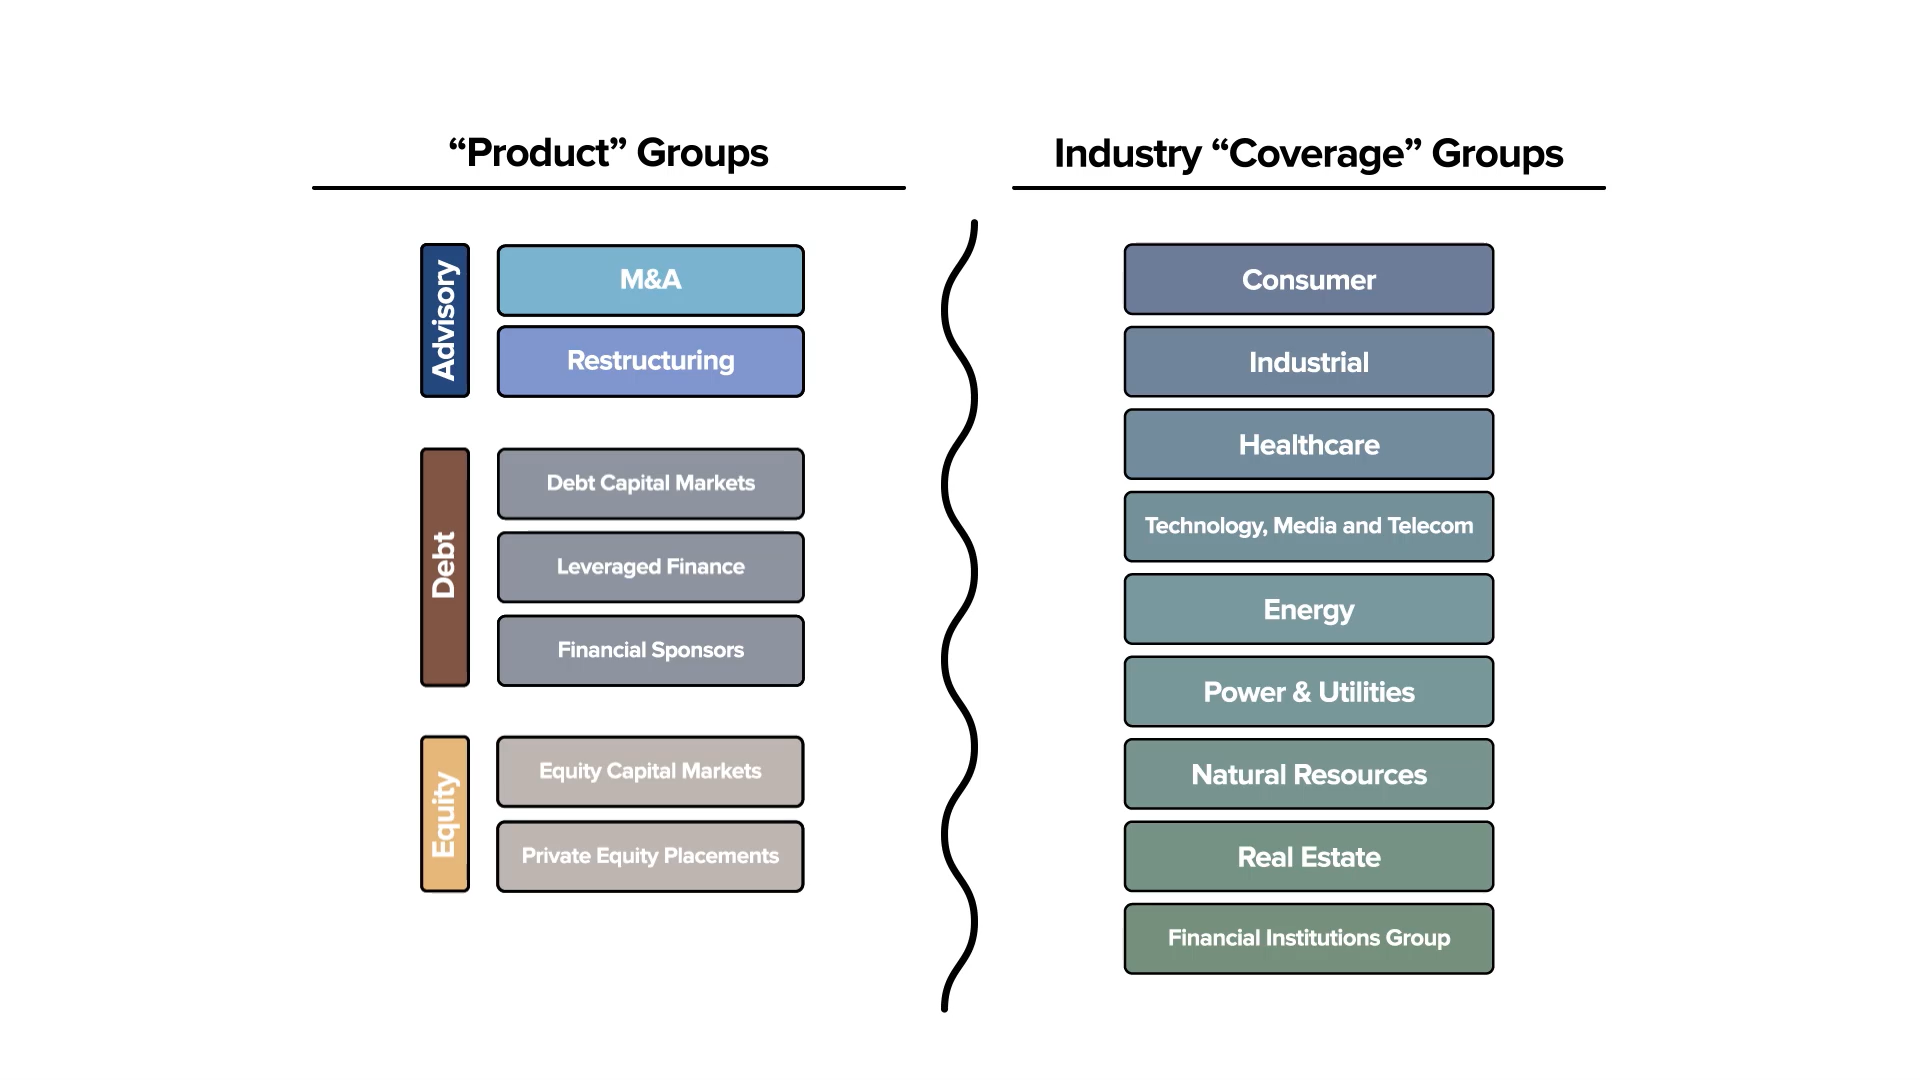 Product Groups and Industry Groups functions